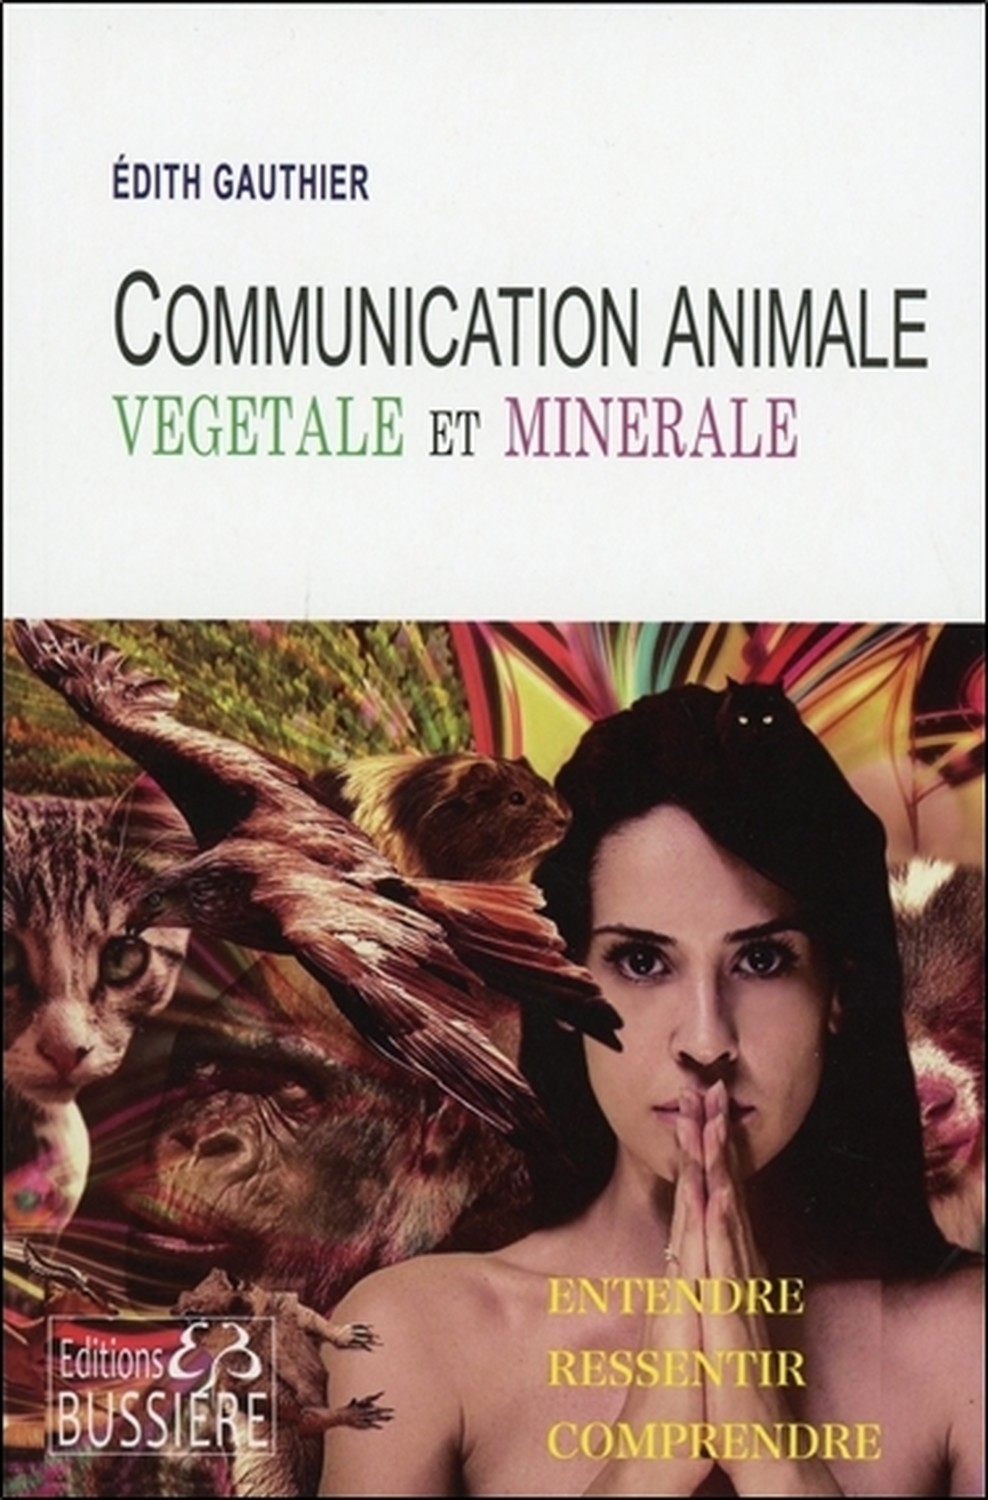 COMMUNICATION ANIMALE, VEGETALE ET MINERALE